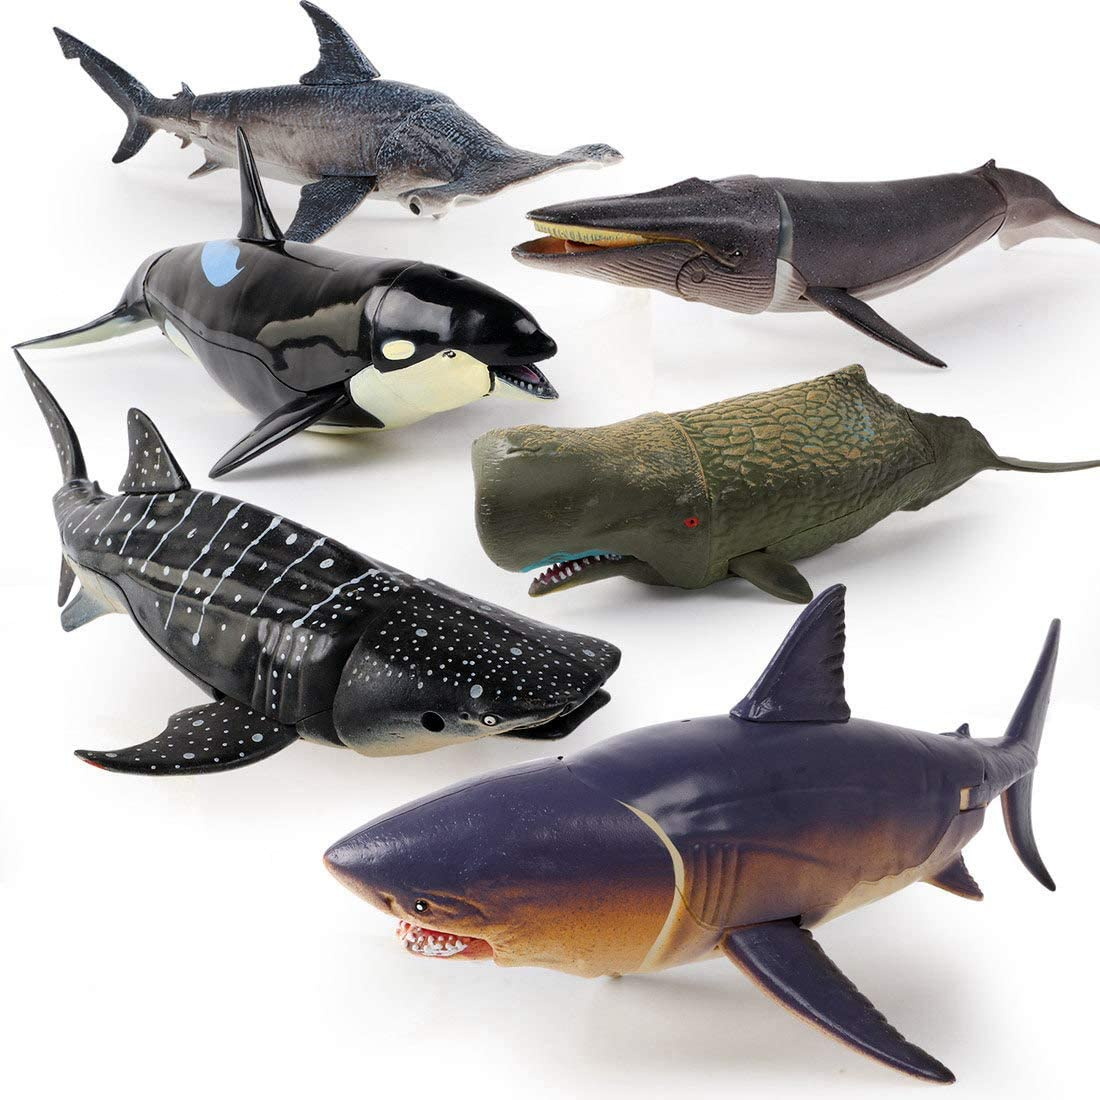 Topics on TV Winsenpro Jumbo Shark Toys Al sold out. 6 Whale Pack Realistic Figu 10